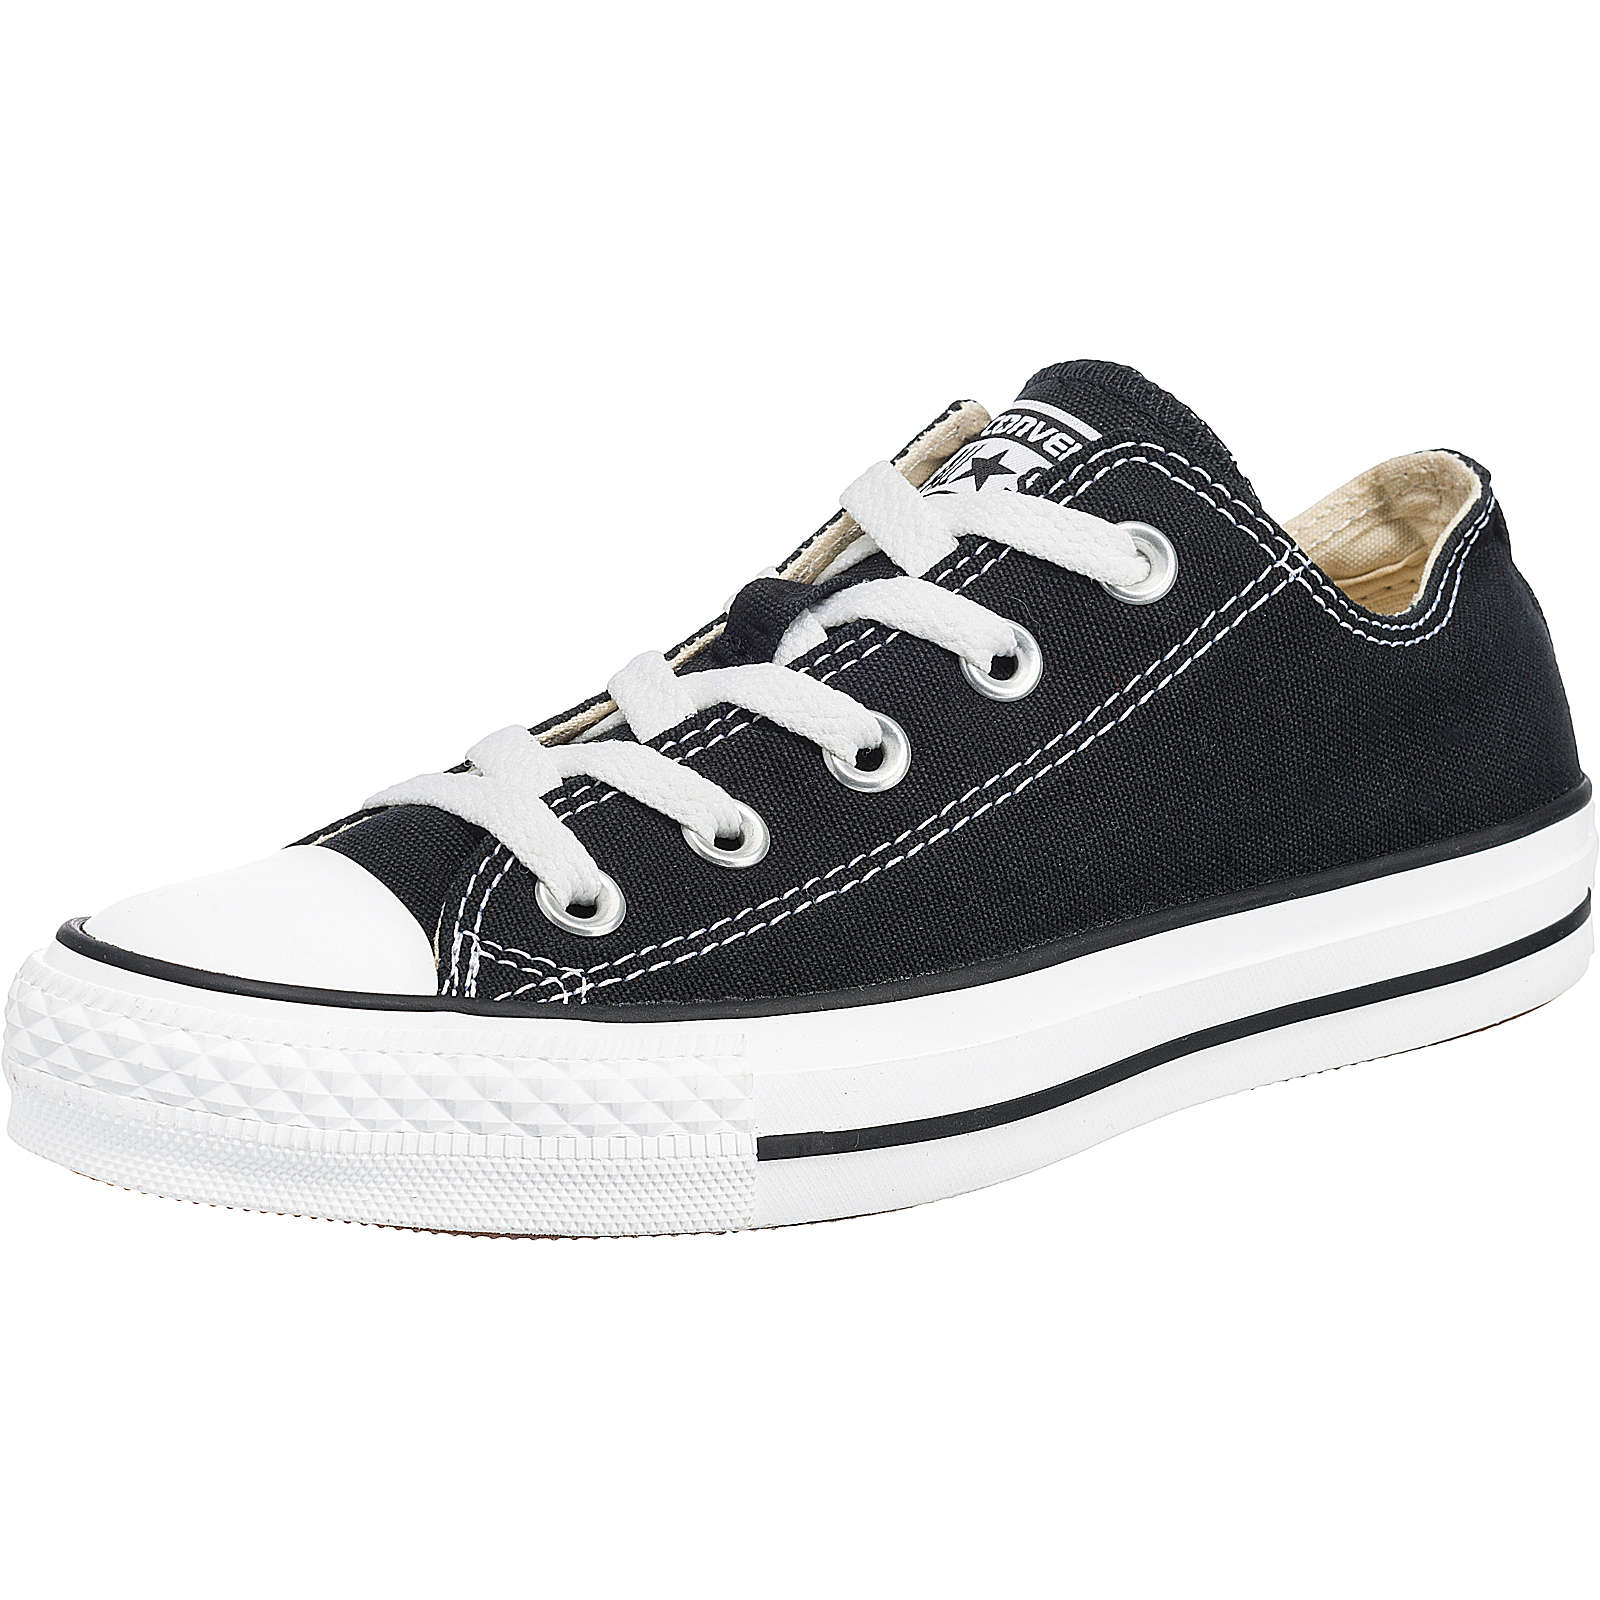 CONVERSE Chuck Taylor All Star Ox Sneakers schwarz Gr. 36,5